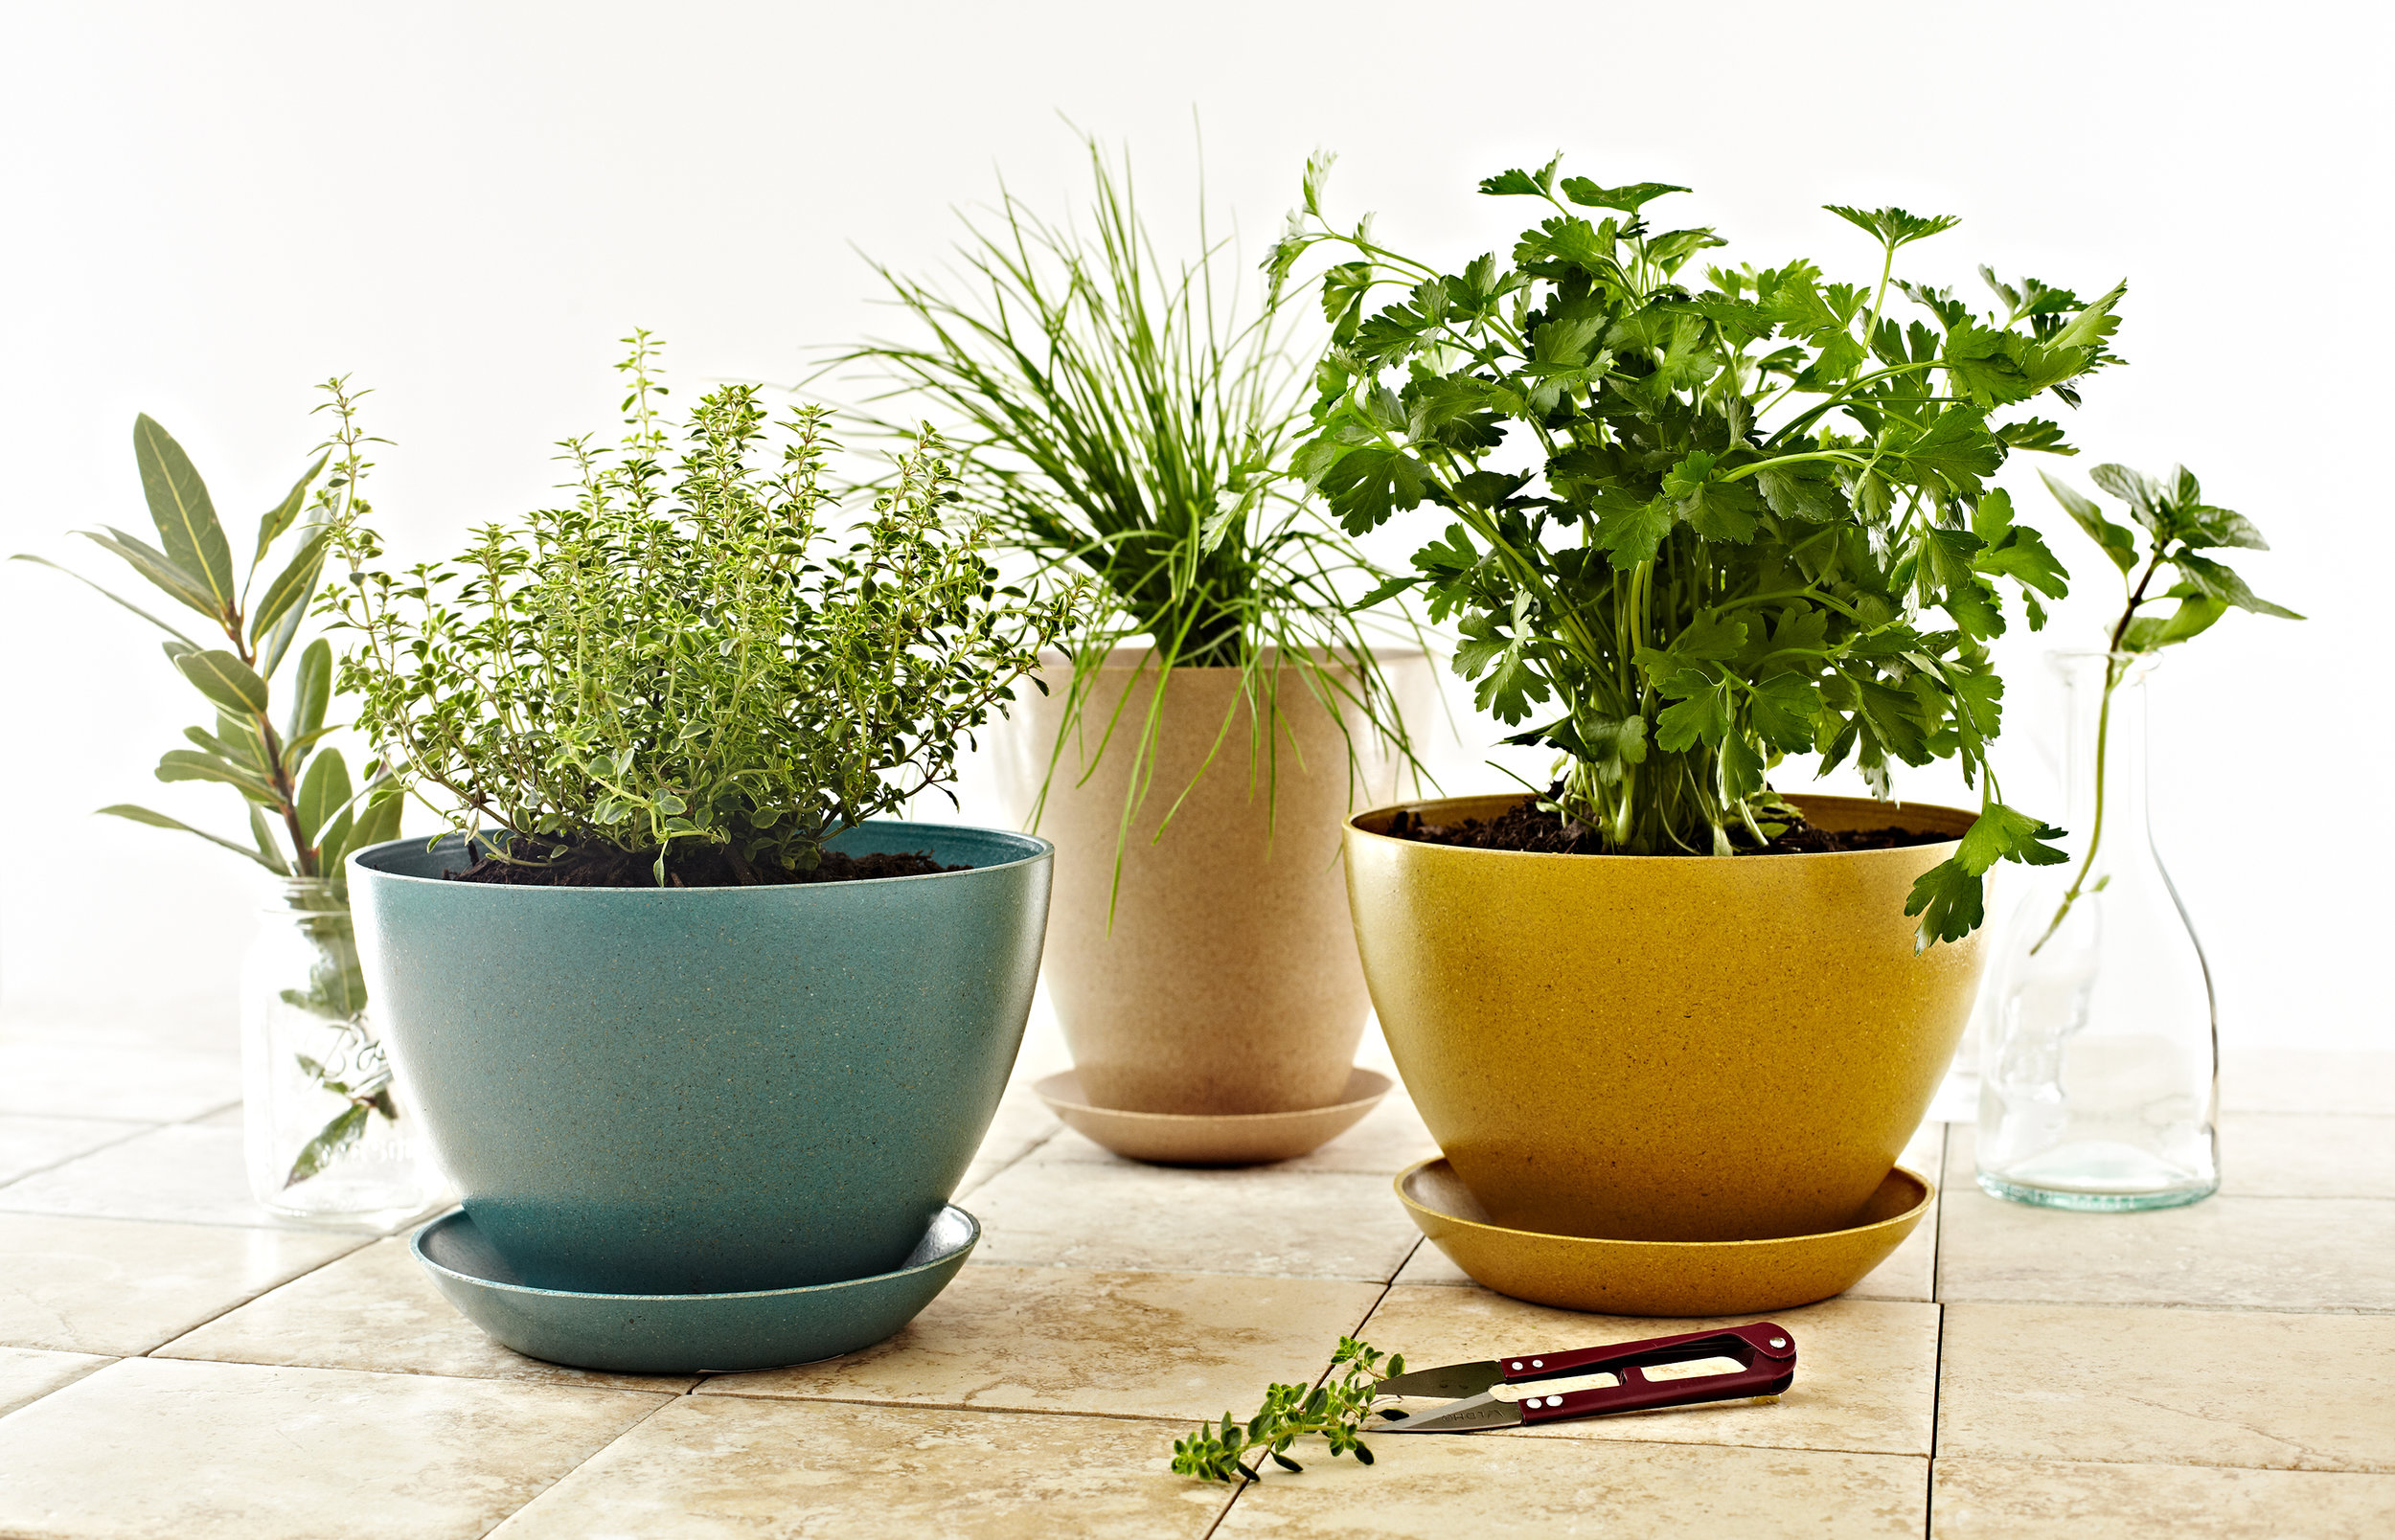 Still-life of herbs in pots on countertop